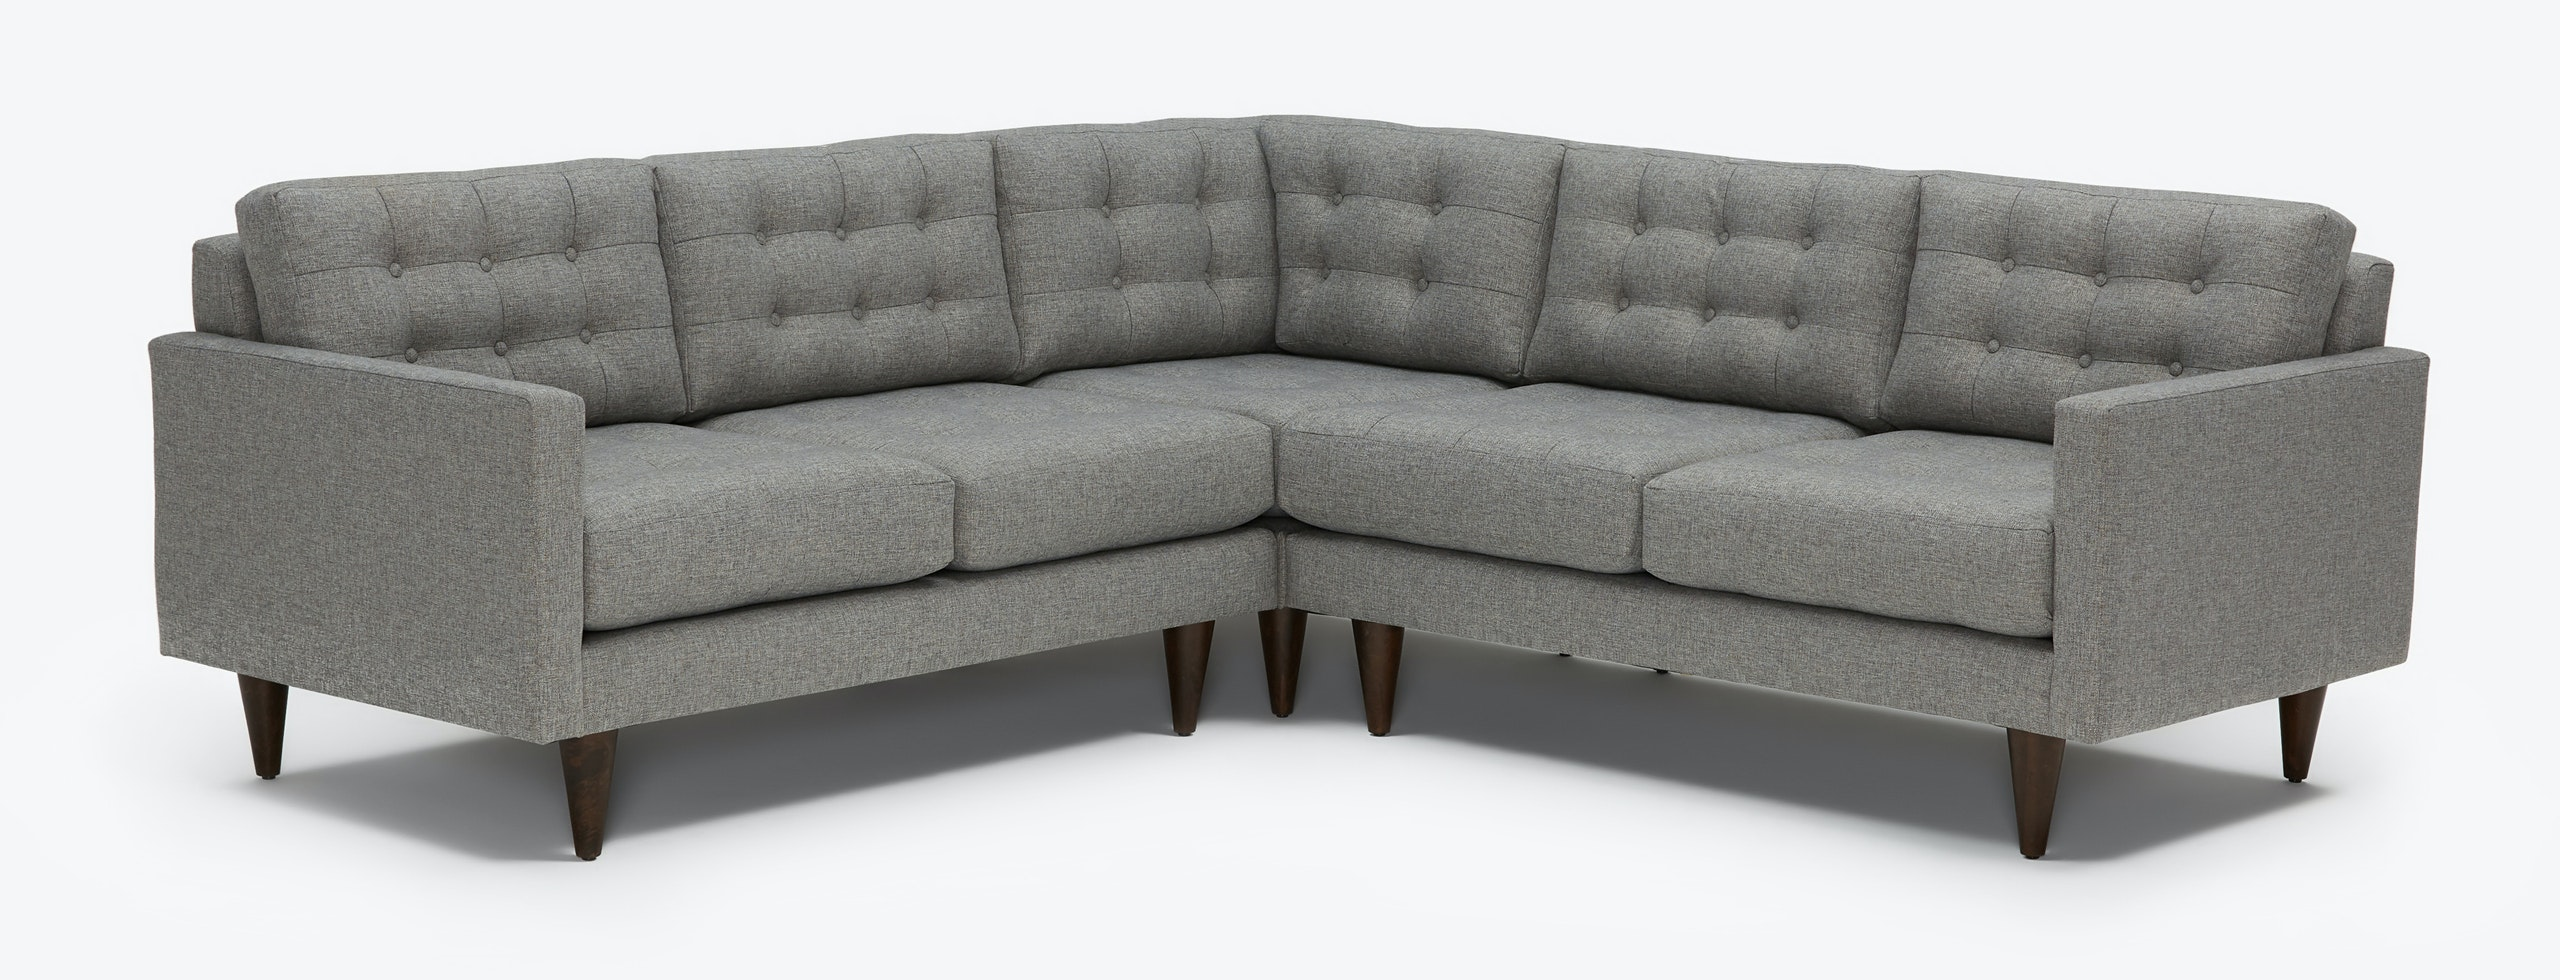 Surprising Eliot Apartment Corner Sectional Ncnpc Chair Design For Home Ncnpcorg